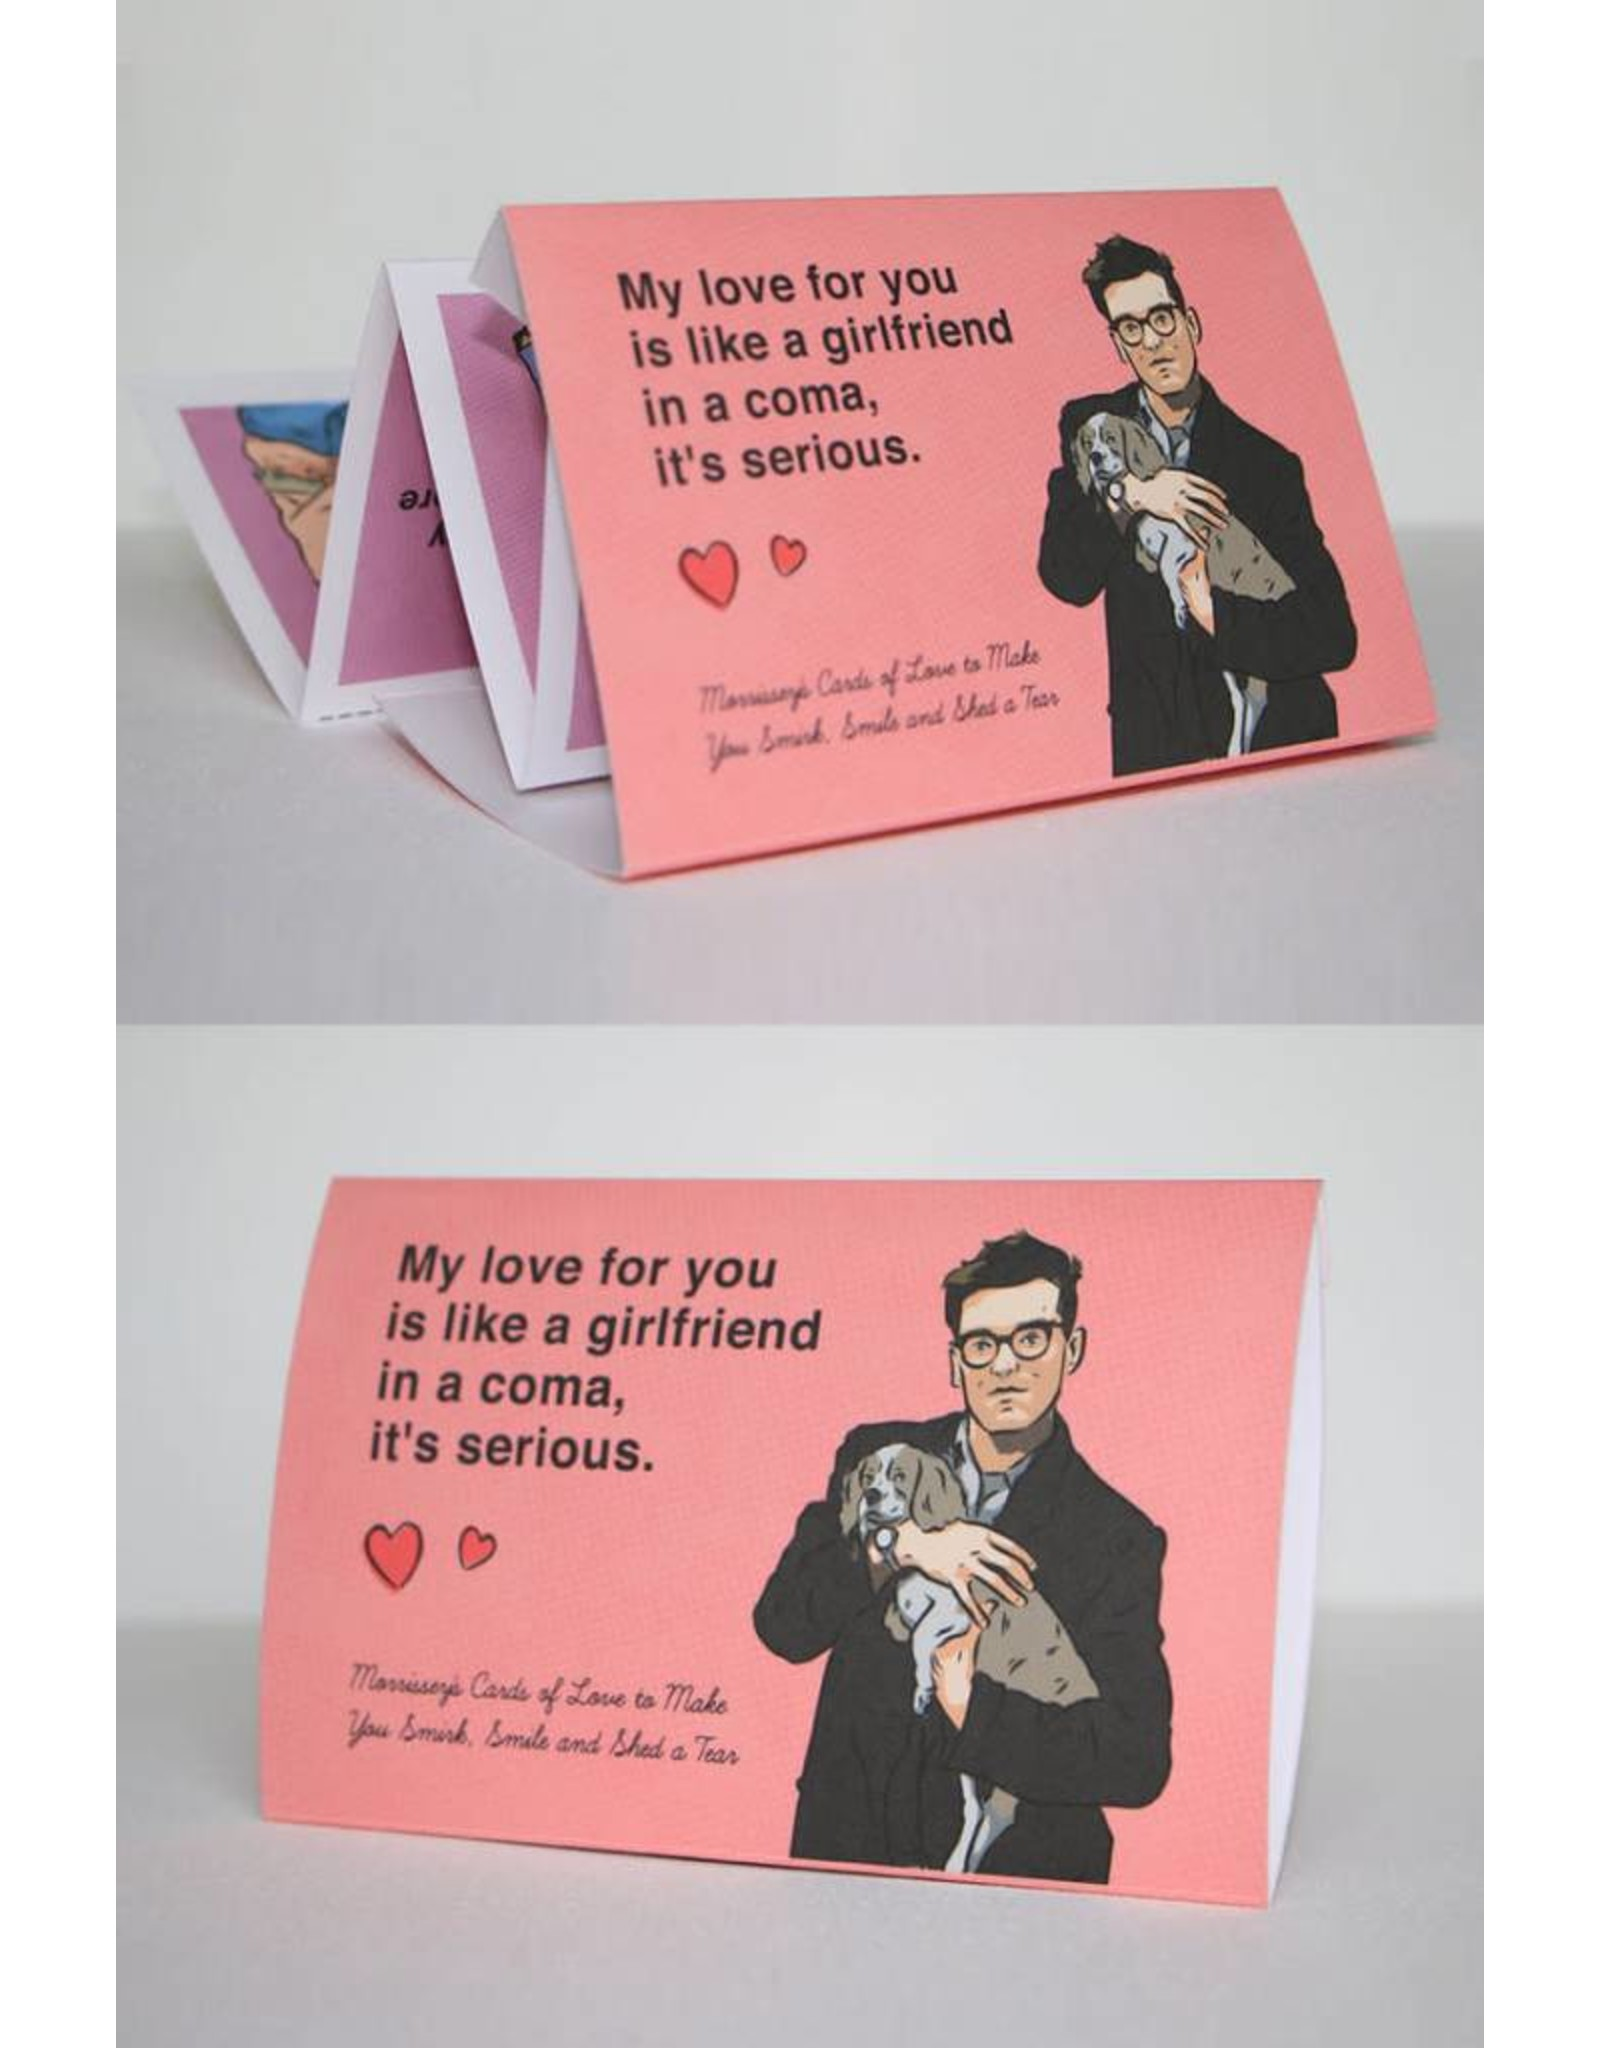 Morrissey's Cards of Love